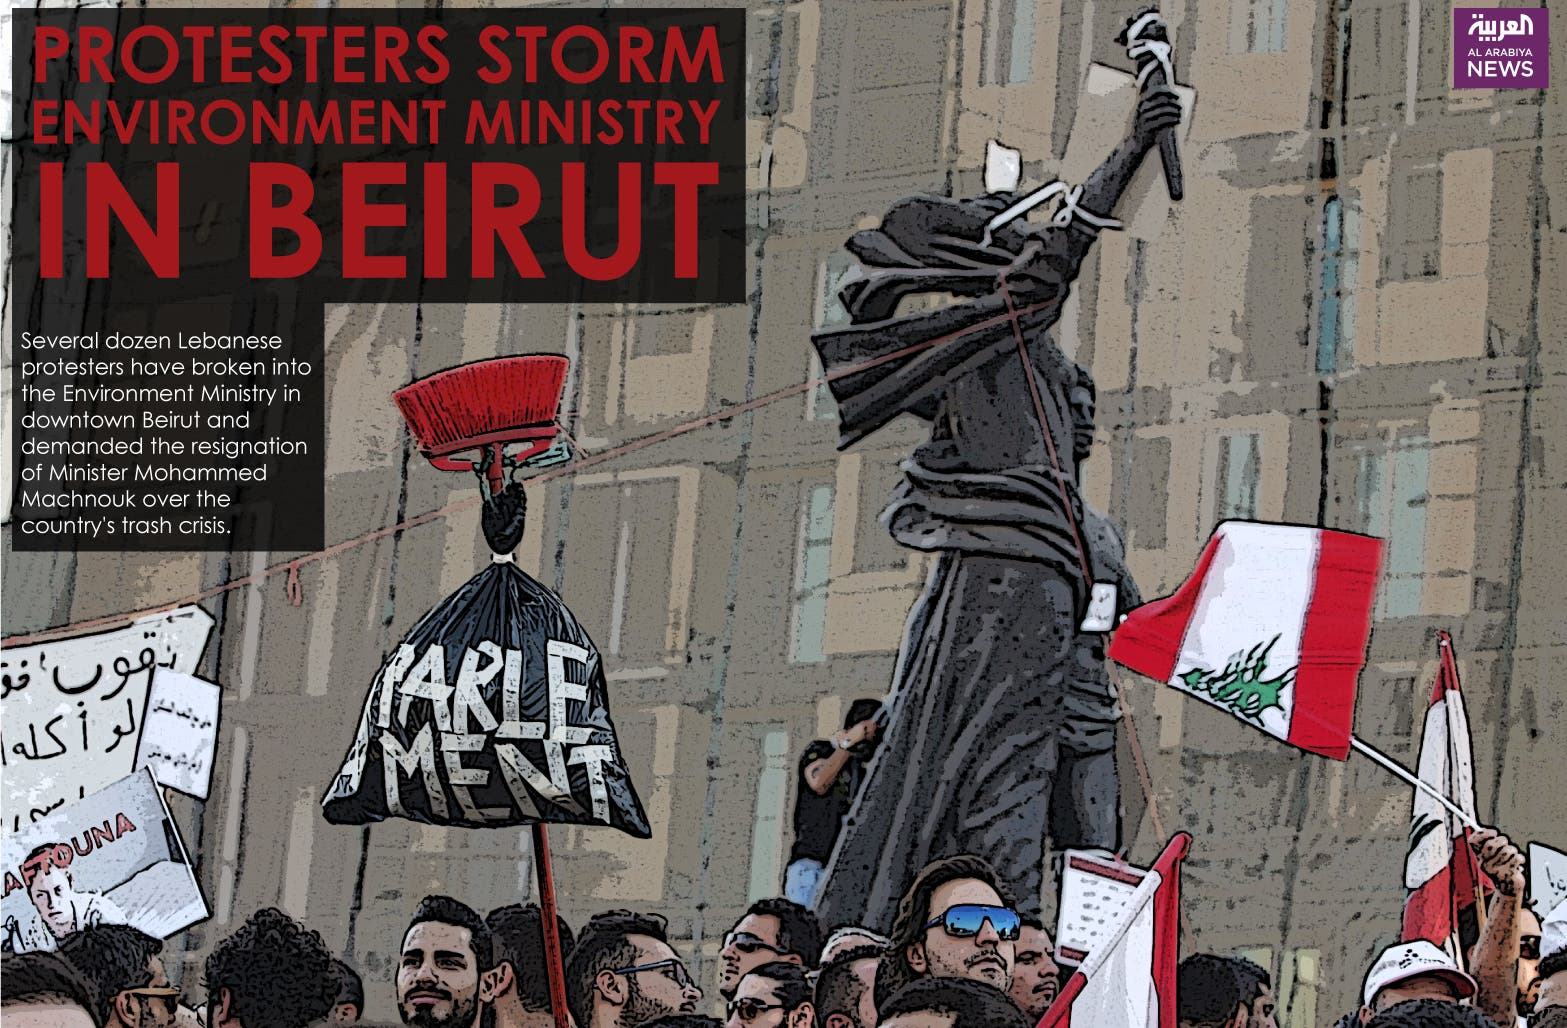 Infographic: Protesters storm environment ministry in Beirut